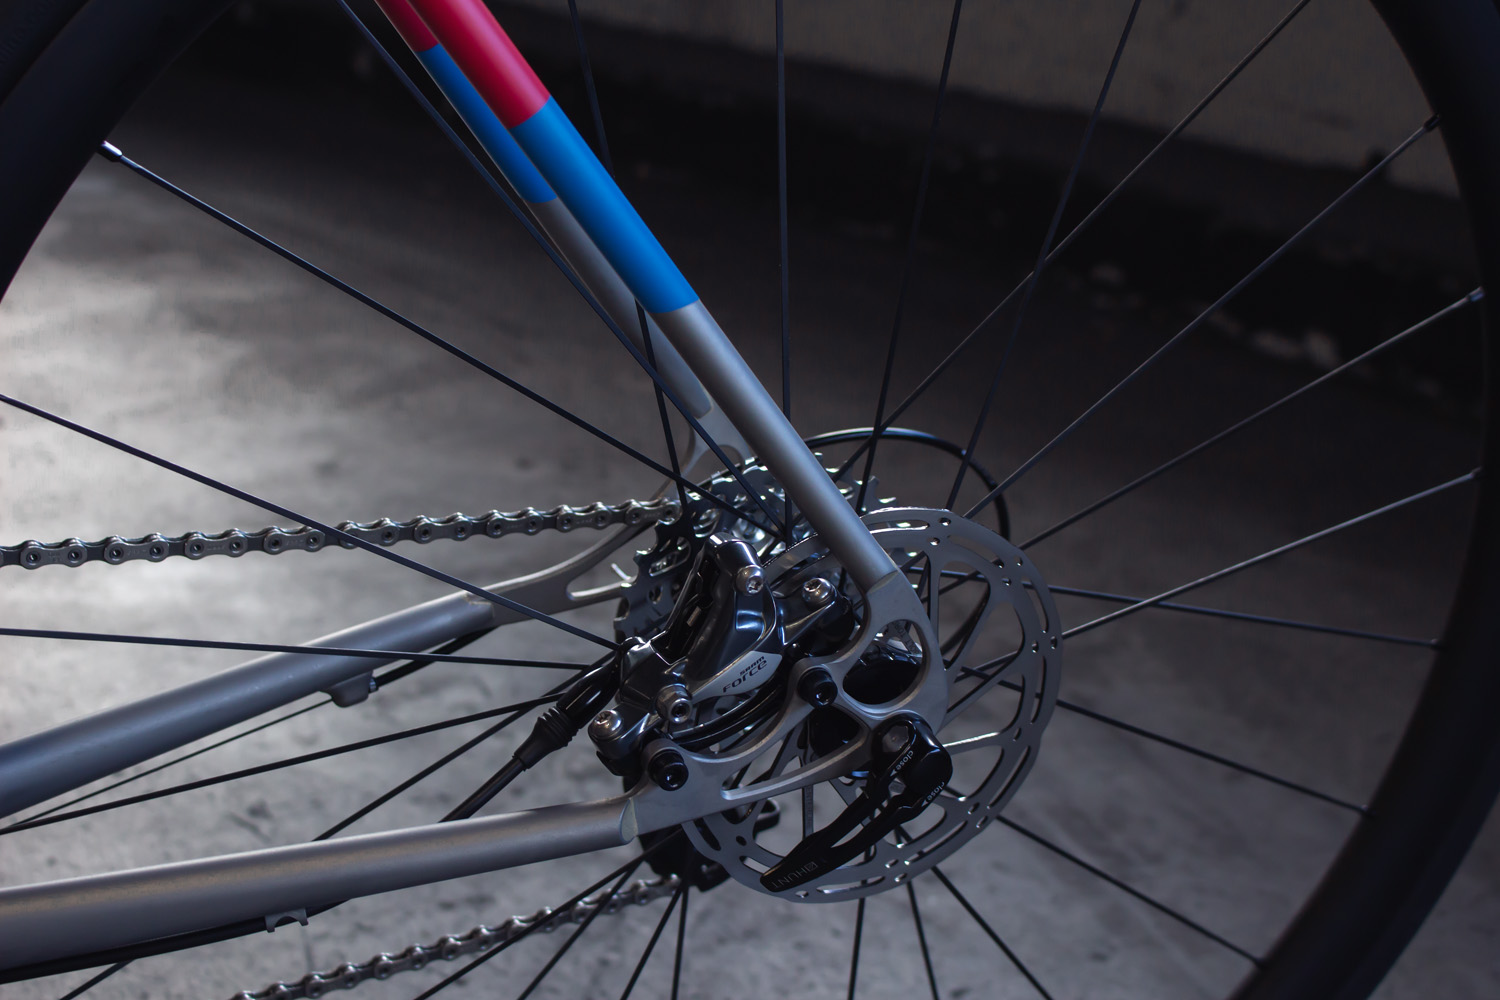 quirk_cycles_stainless_carbon_climber_road_JPEG_0008.jpg